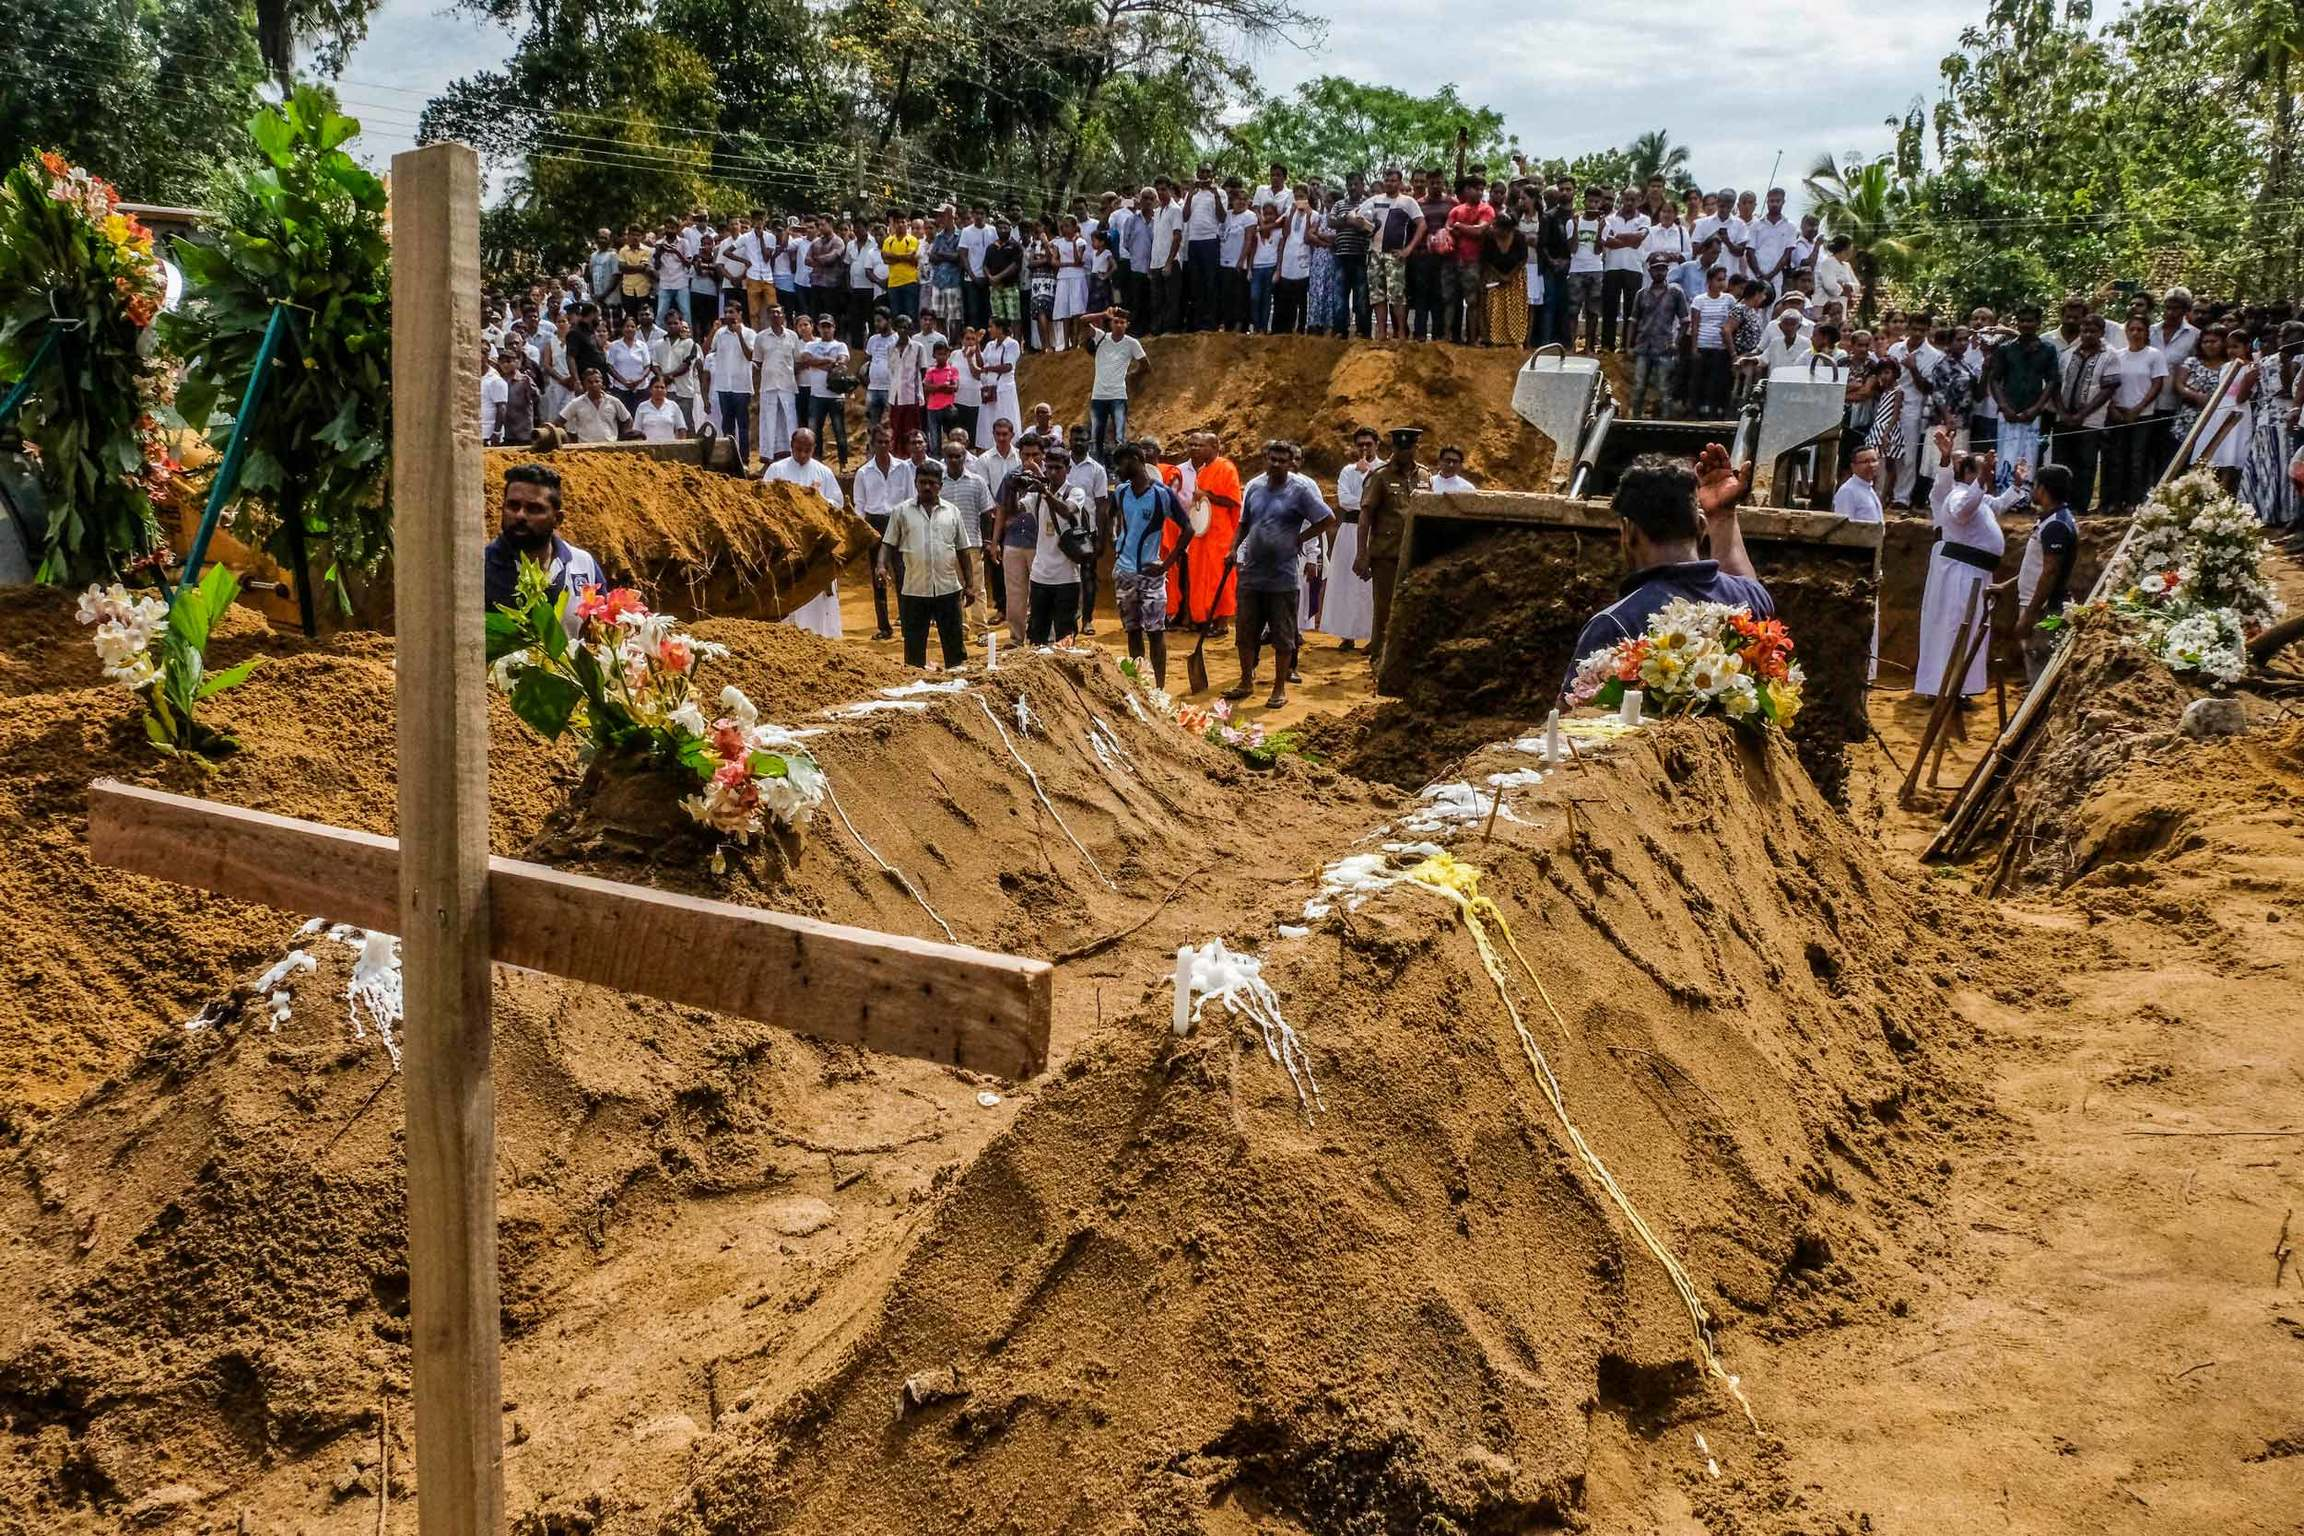 A crowd of people watch as a backhoe moves dirt over caskets during a mass funeral